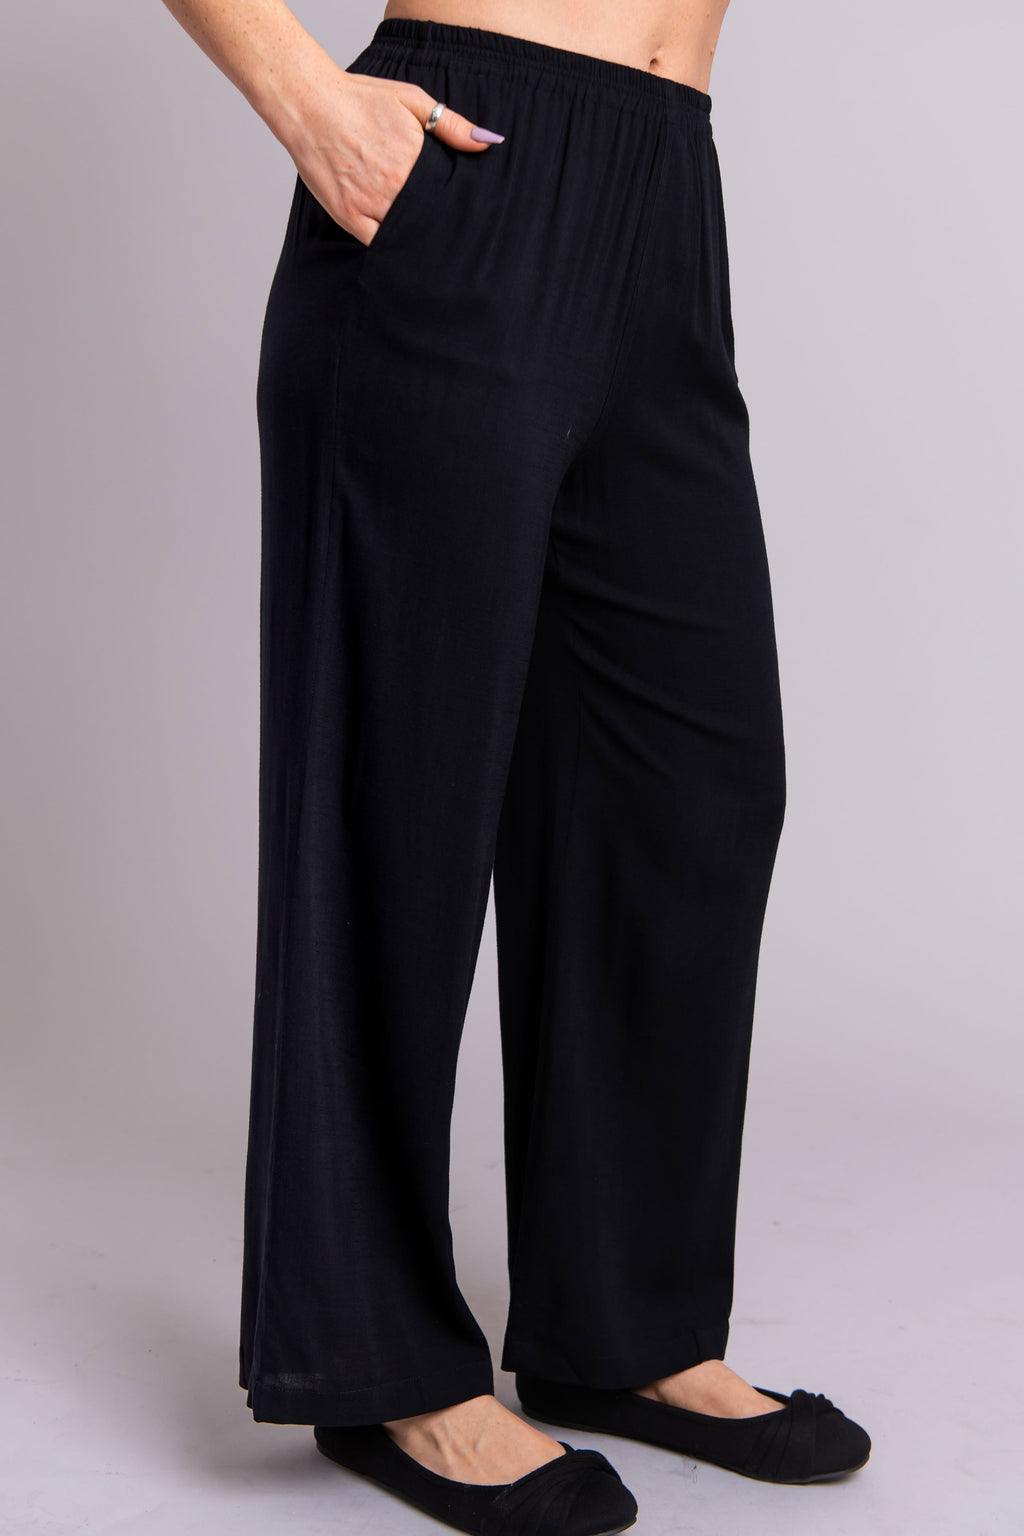 The Bella Pant in Black